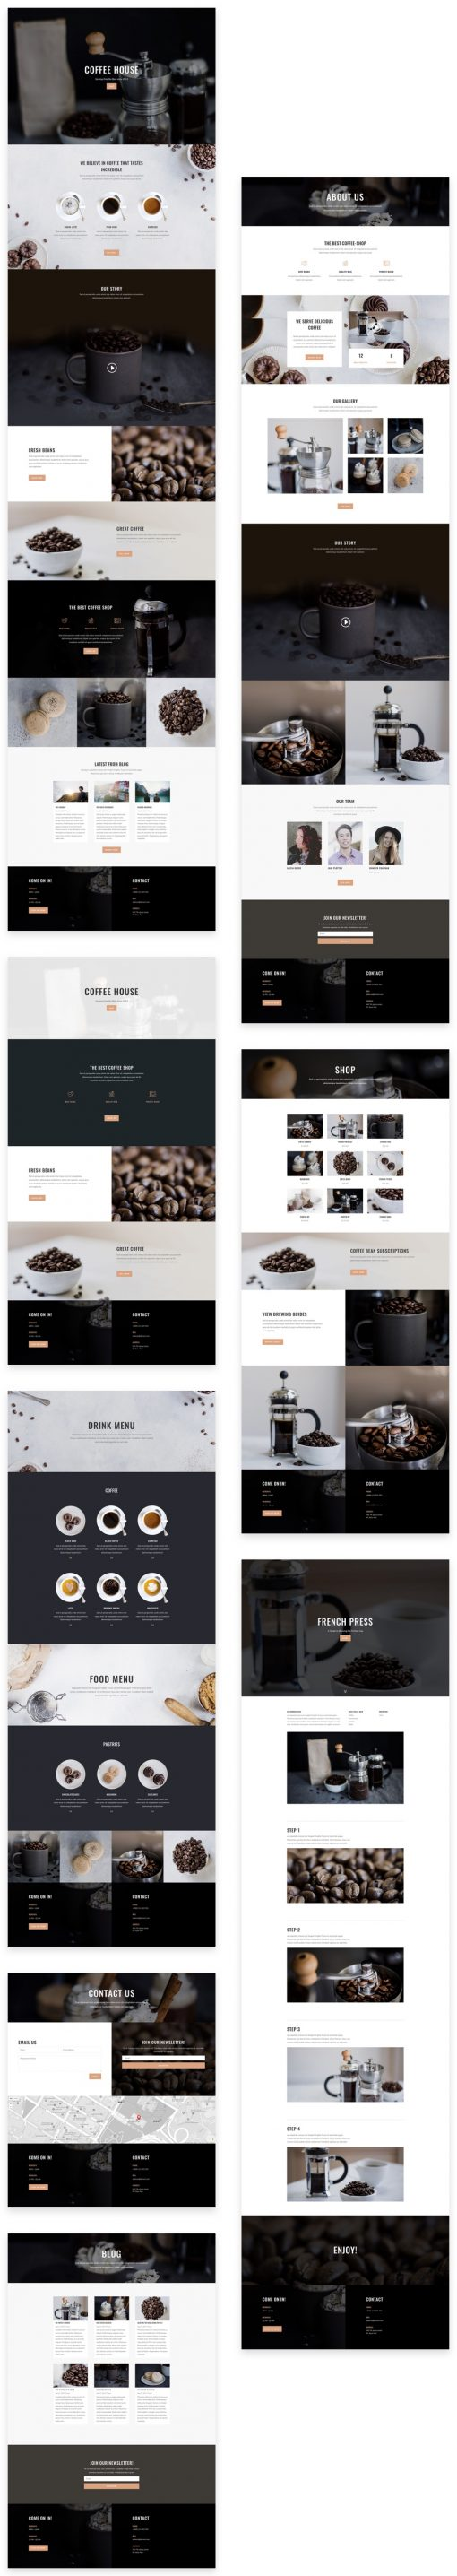 Lanarkshire Website Design Coffee Shop and Cafe package